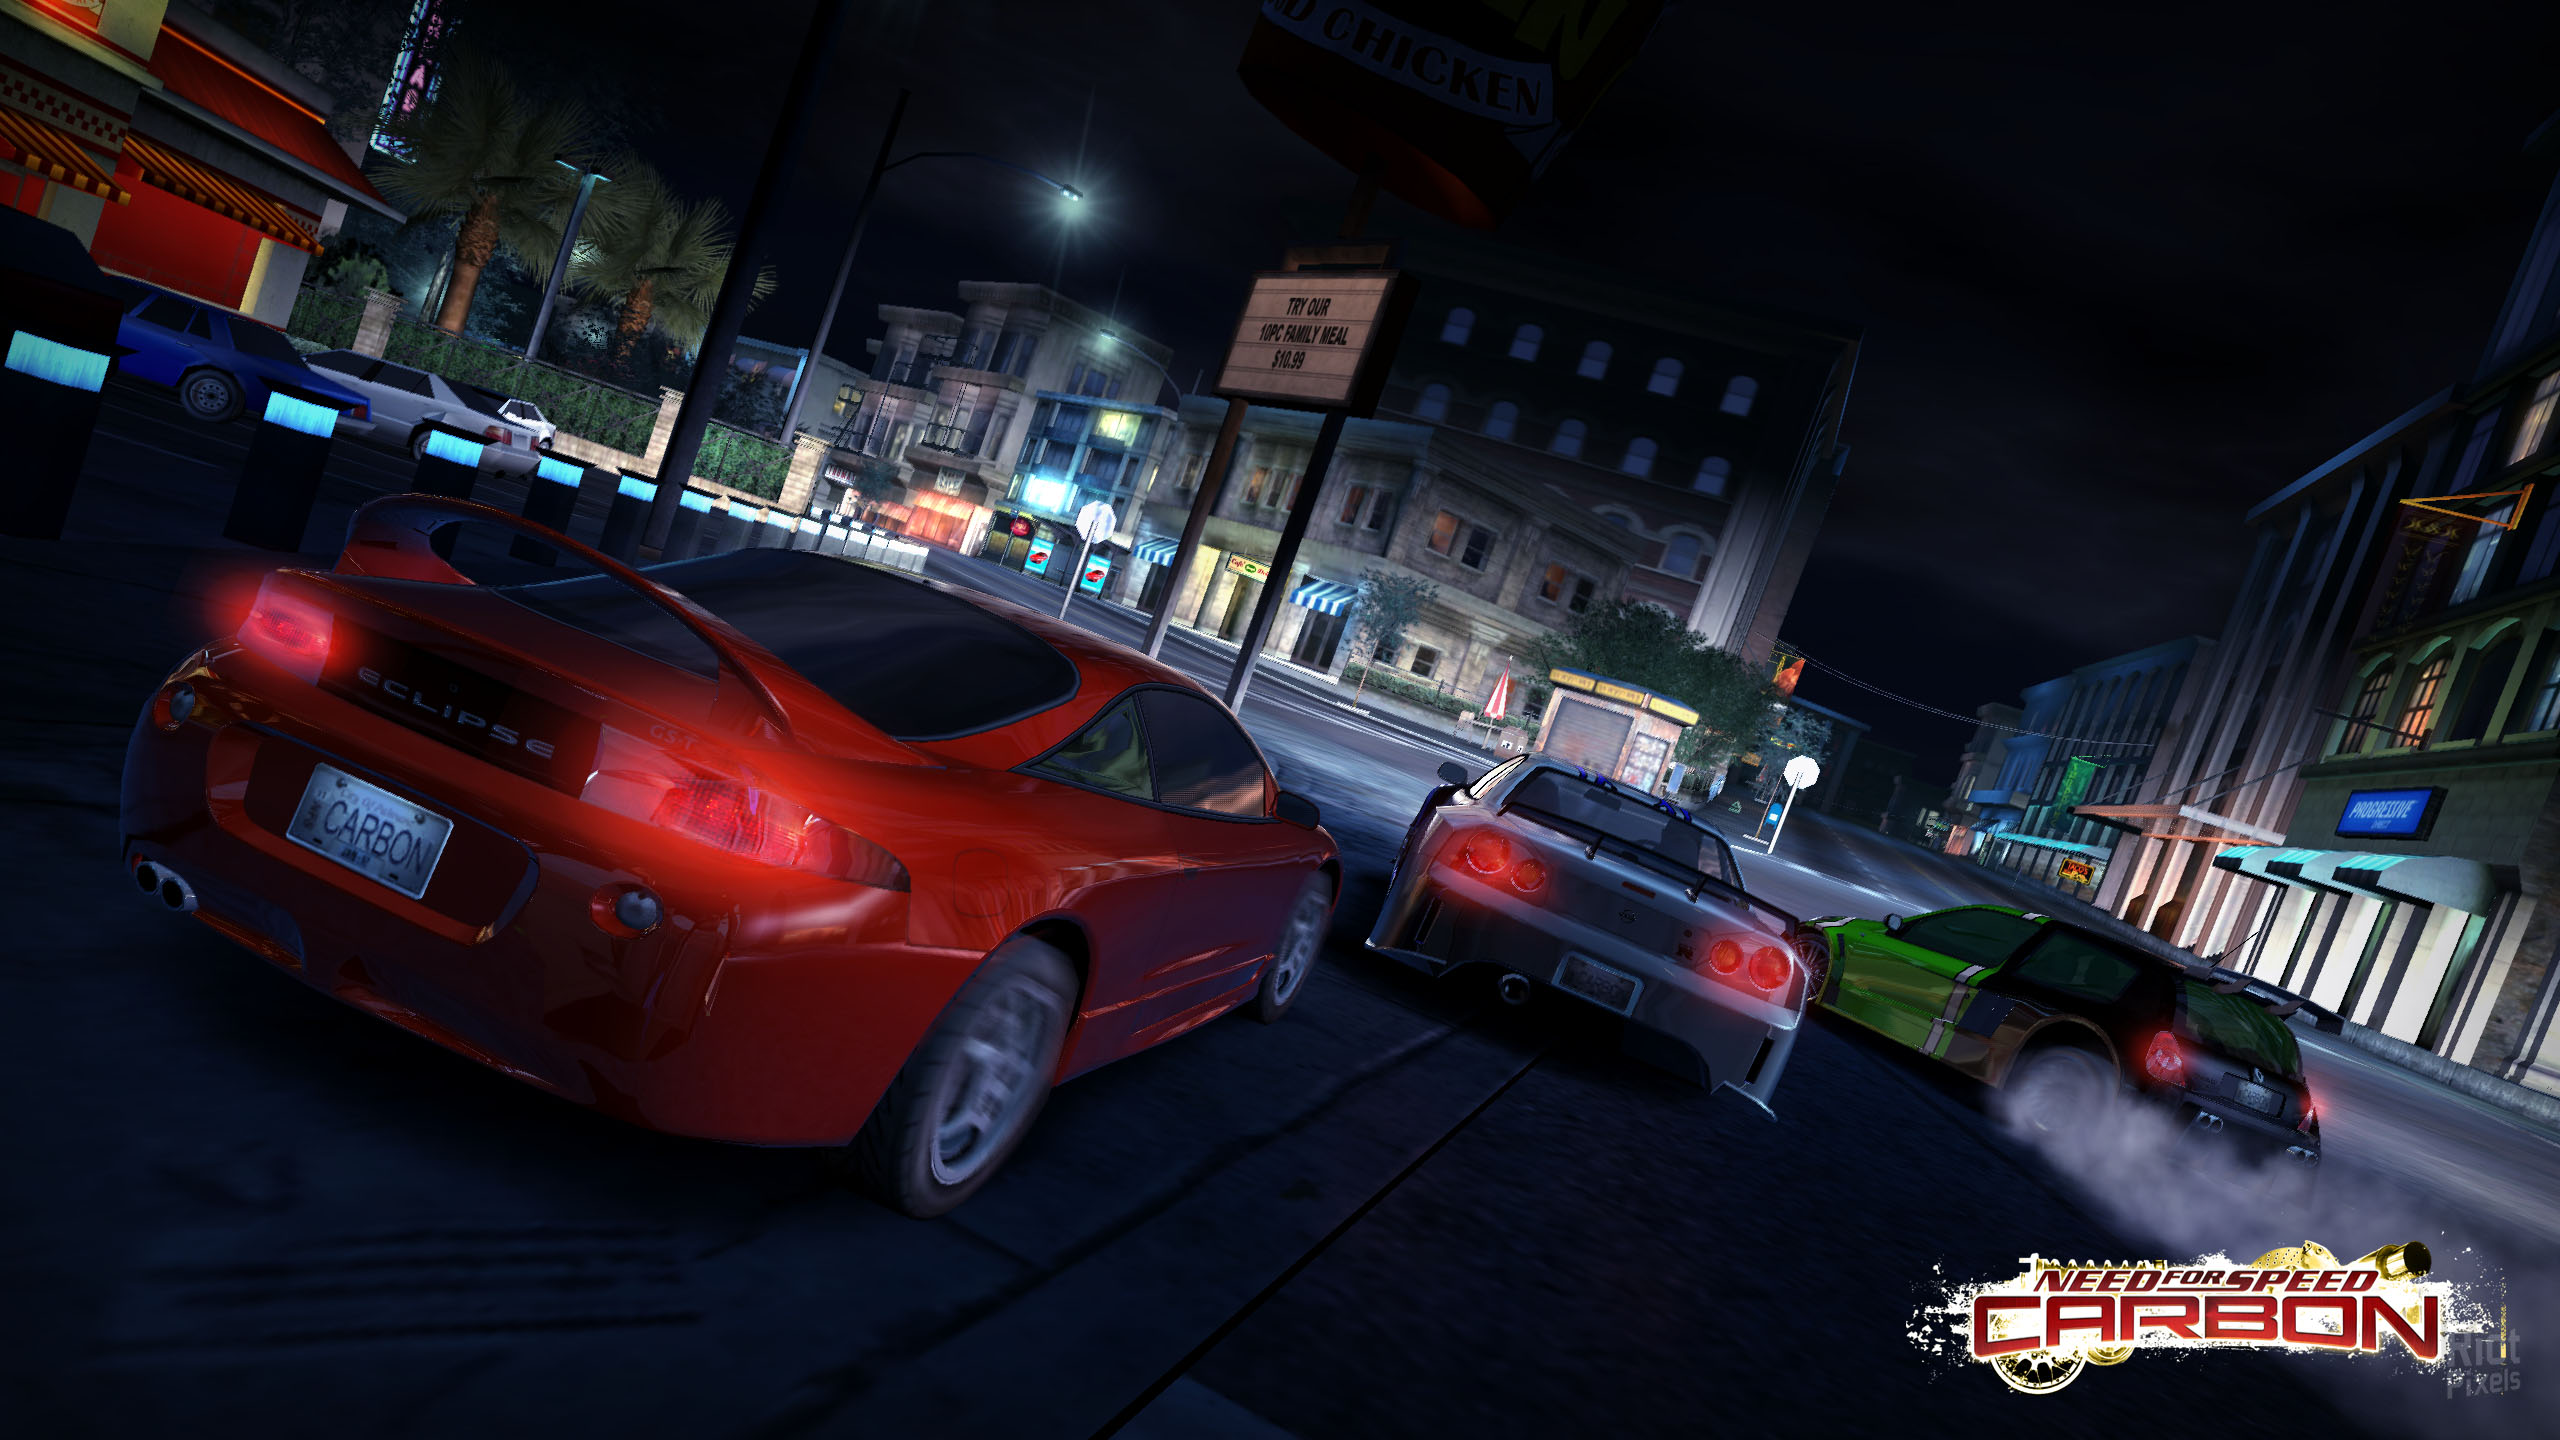 Nfs Car Racing Games Free Download For Pc Generationman